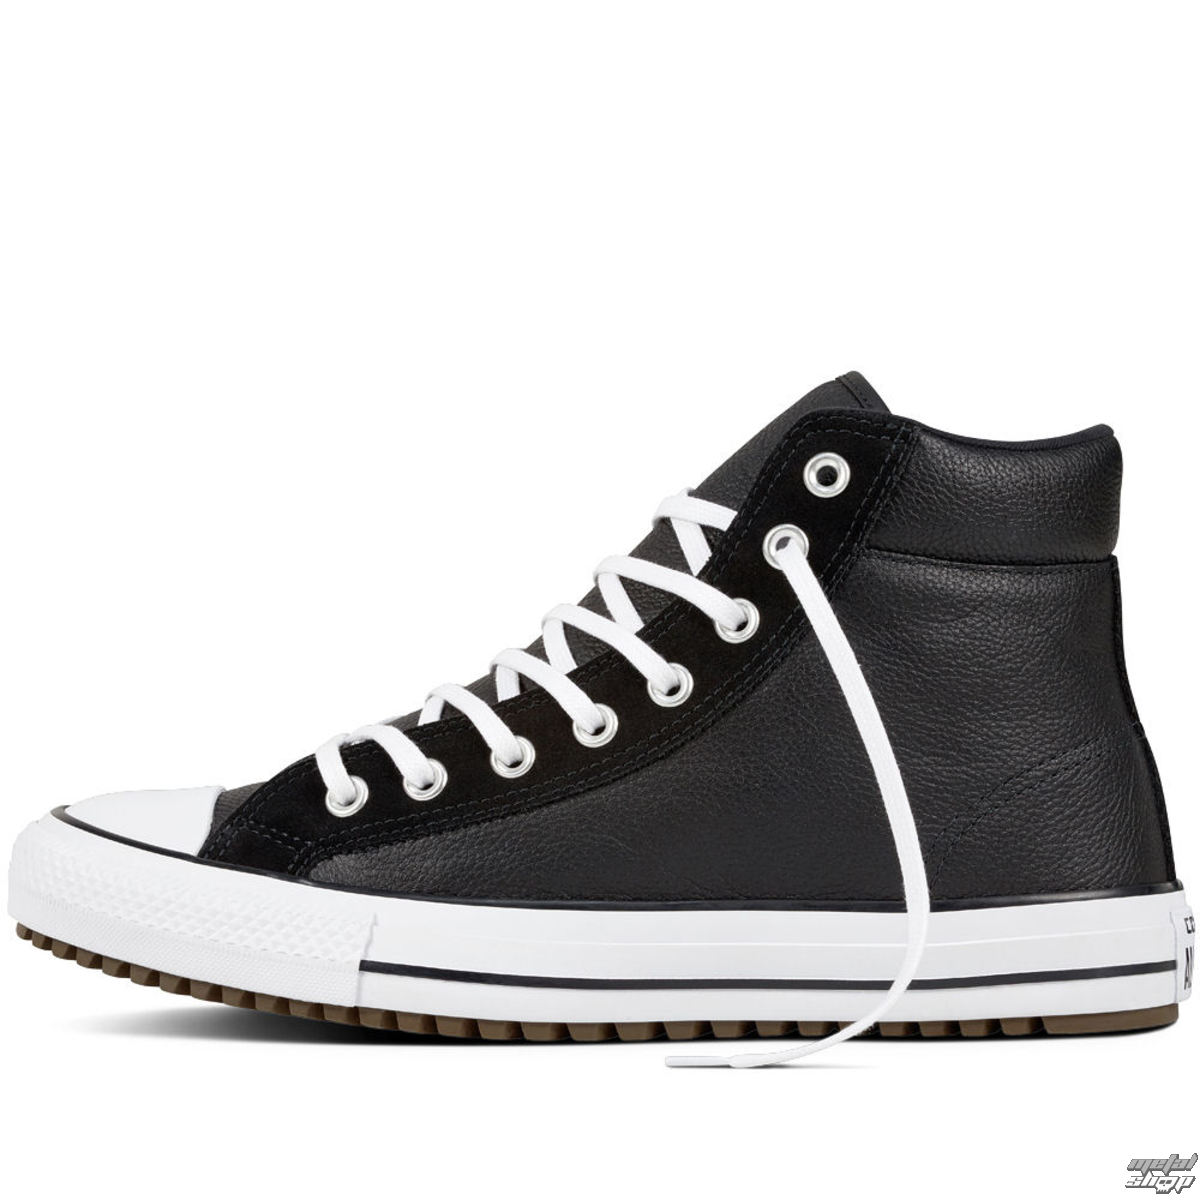 Herren Winterschuhe - Chuck Taylor All Star PC - CONVERSE